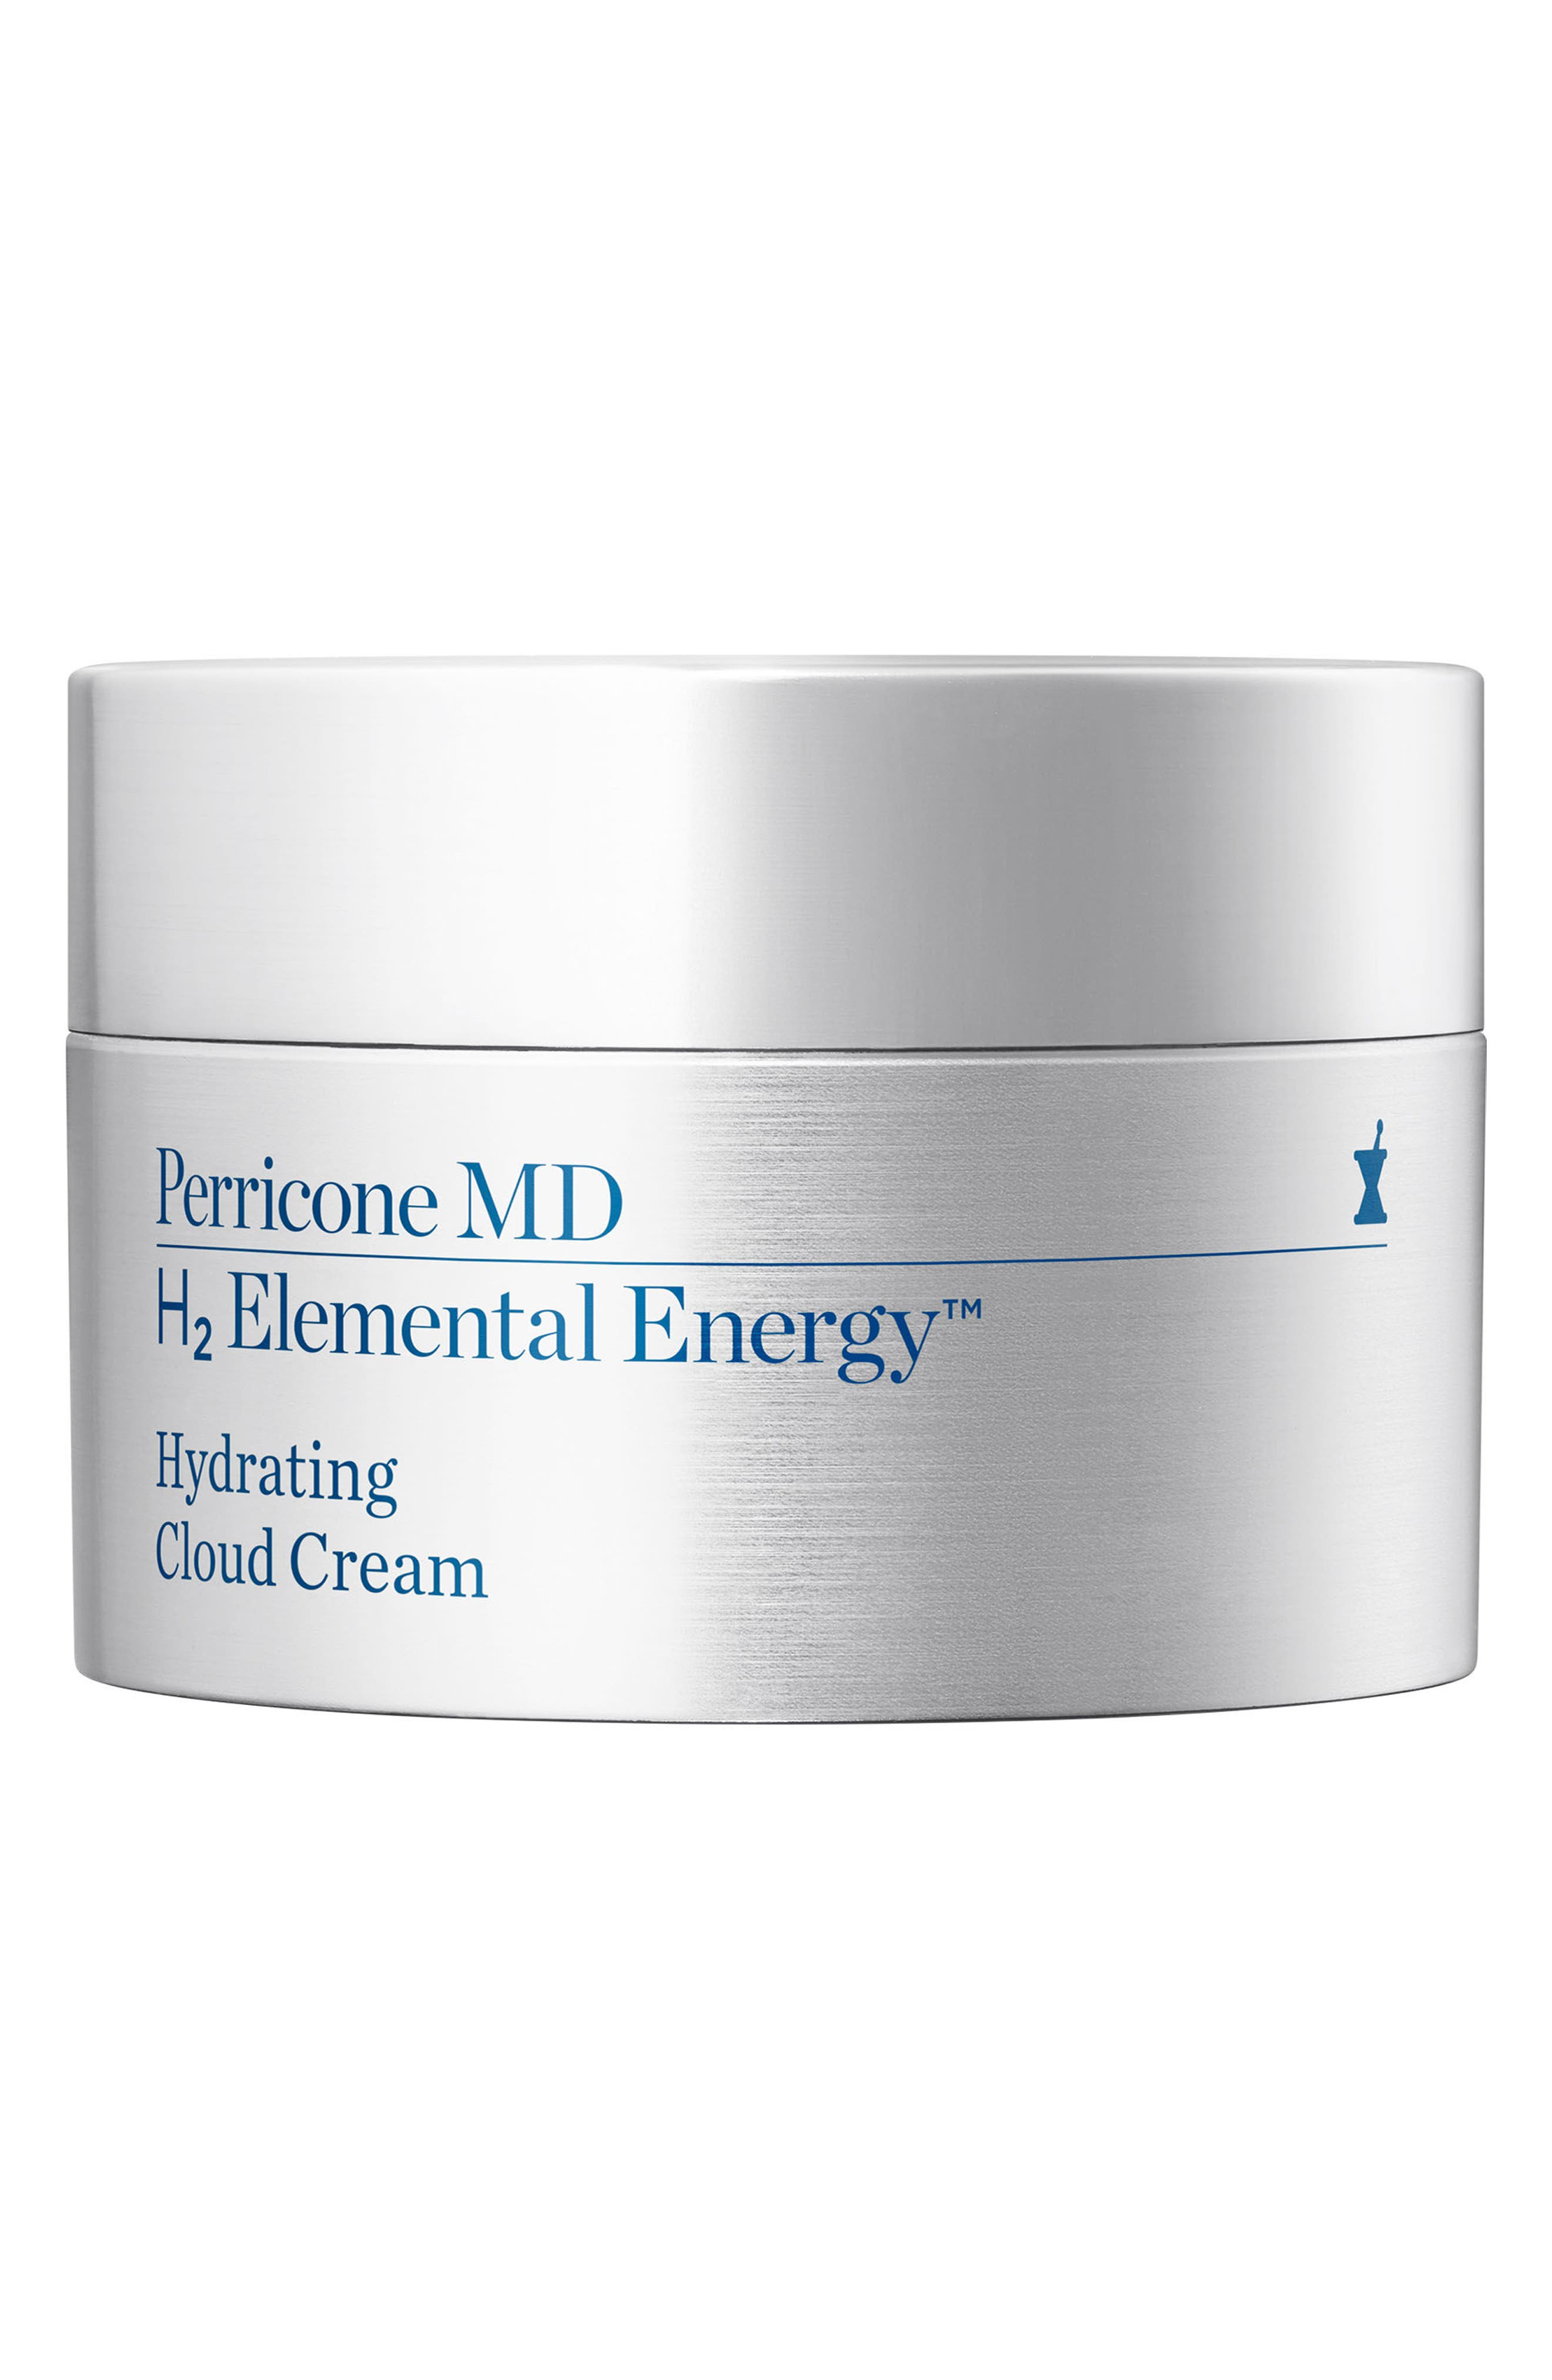 Alternate Image 1 Selected - Perricone MD H2 Elemental Energy Hydrating Cloud Cream